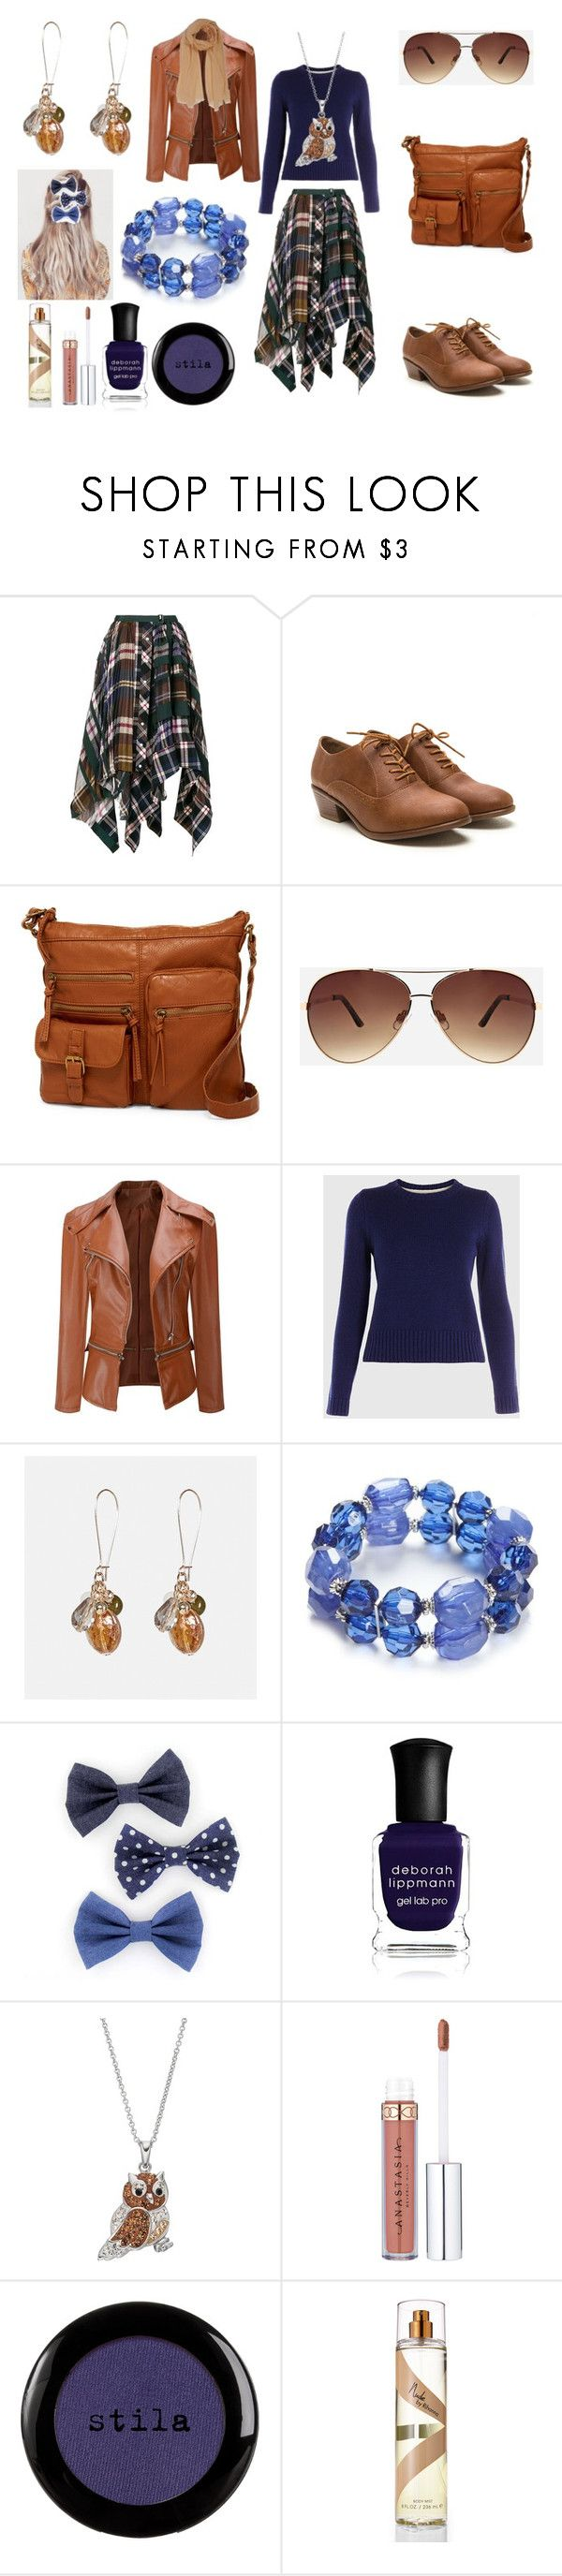 """Cute Fall Outfit for School"" by holly32196-1 ❤ liked on Polyvore featuring Sacai, Bueno, Ashley Stewart, WithChic, Avenue, Kim Rogers, Deborah Lippmann and Stila"